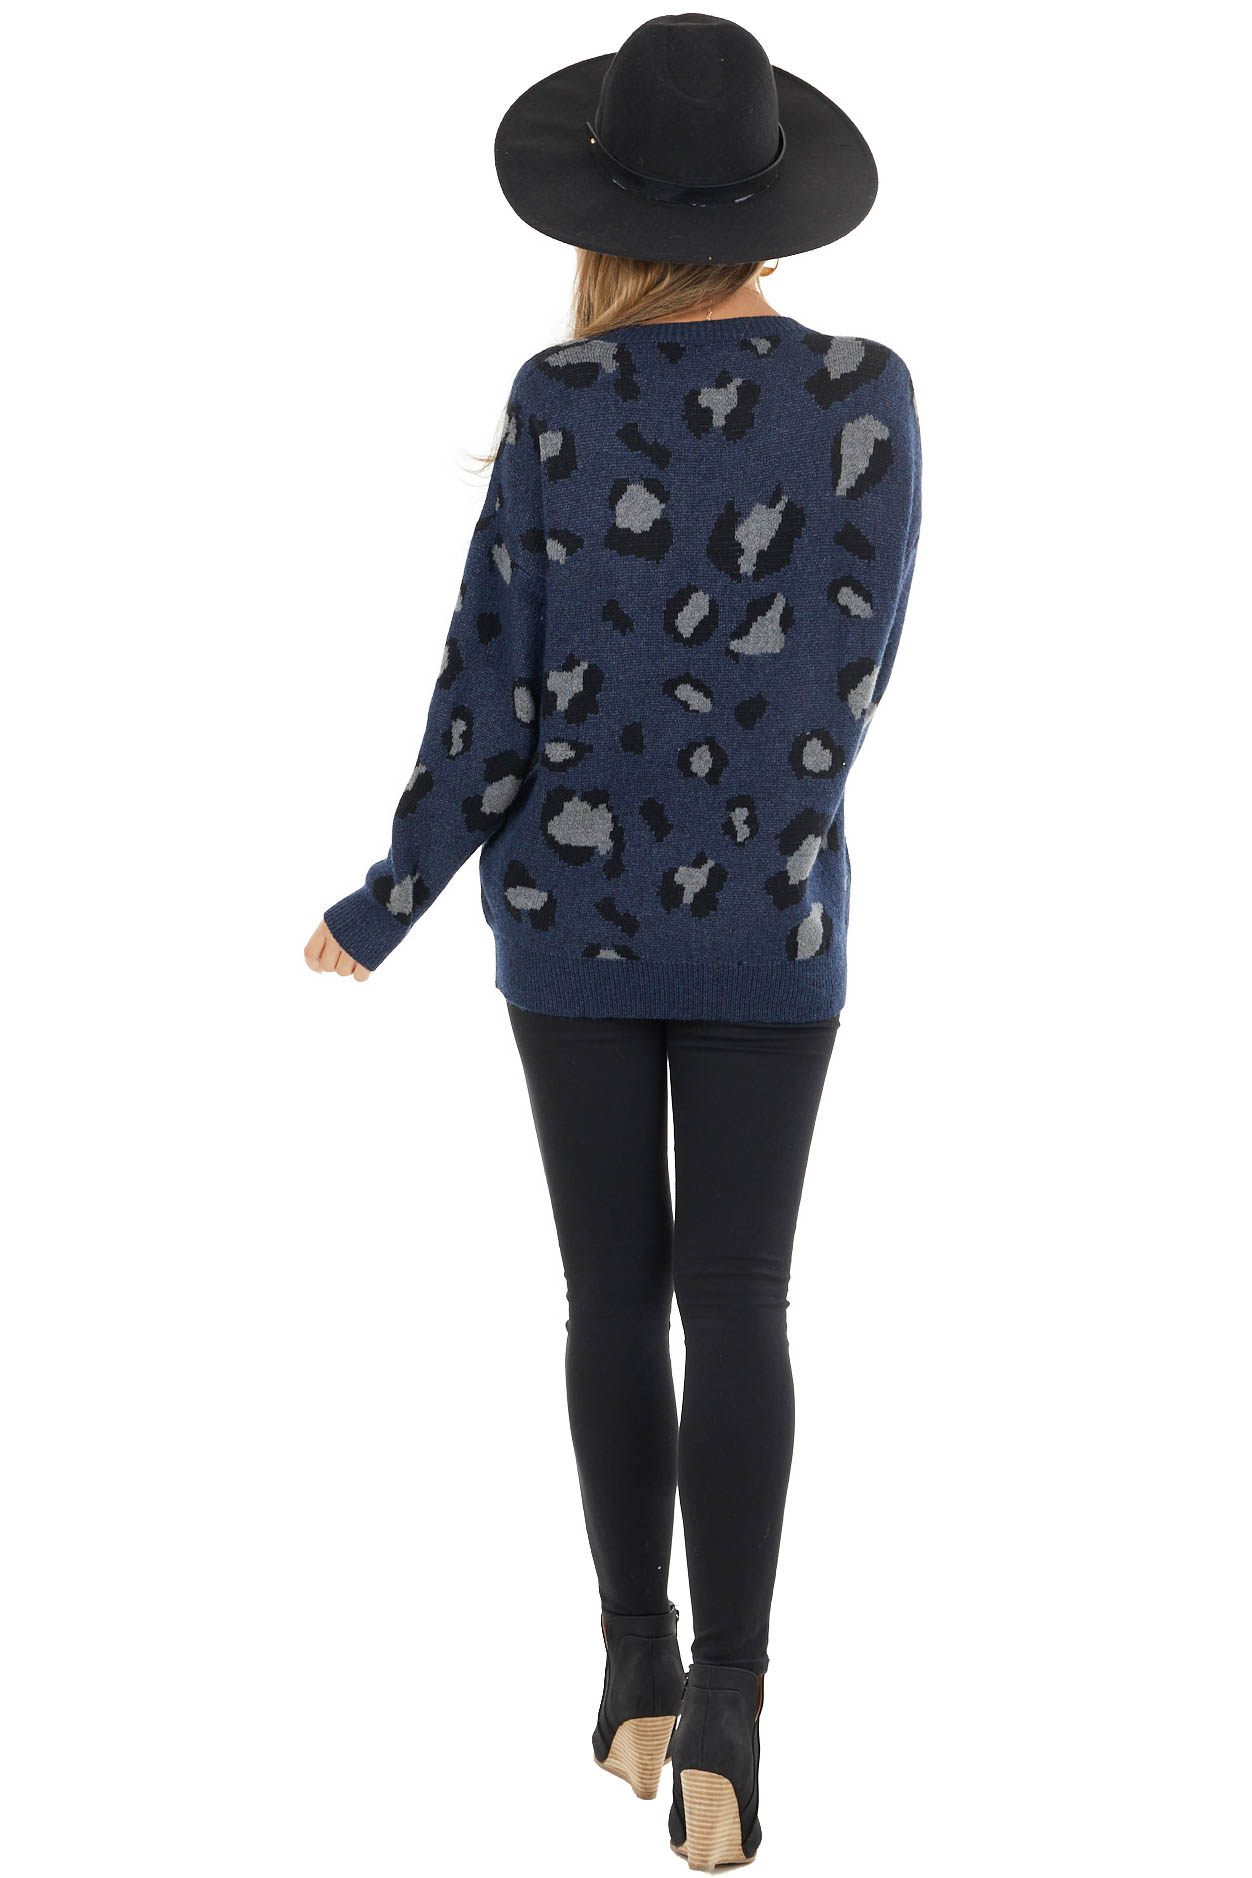 Heathered Navy Leopard Print Thick Cozy Knit Sweater